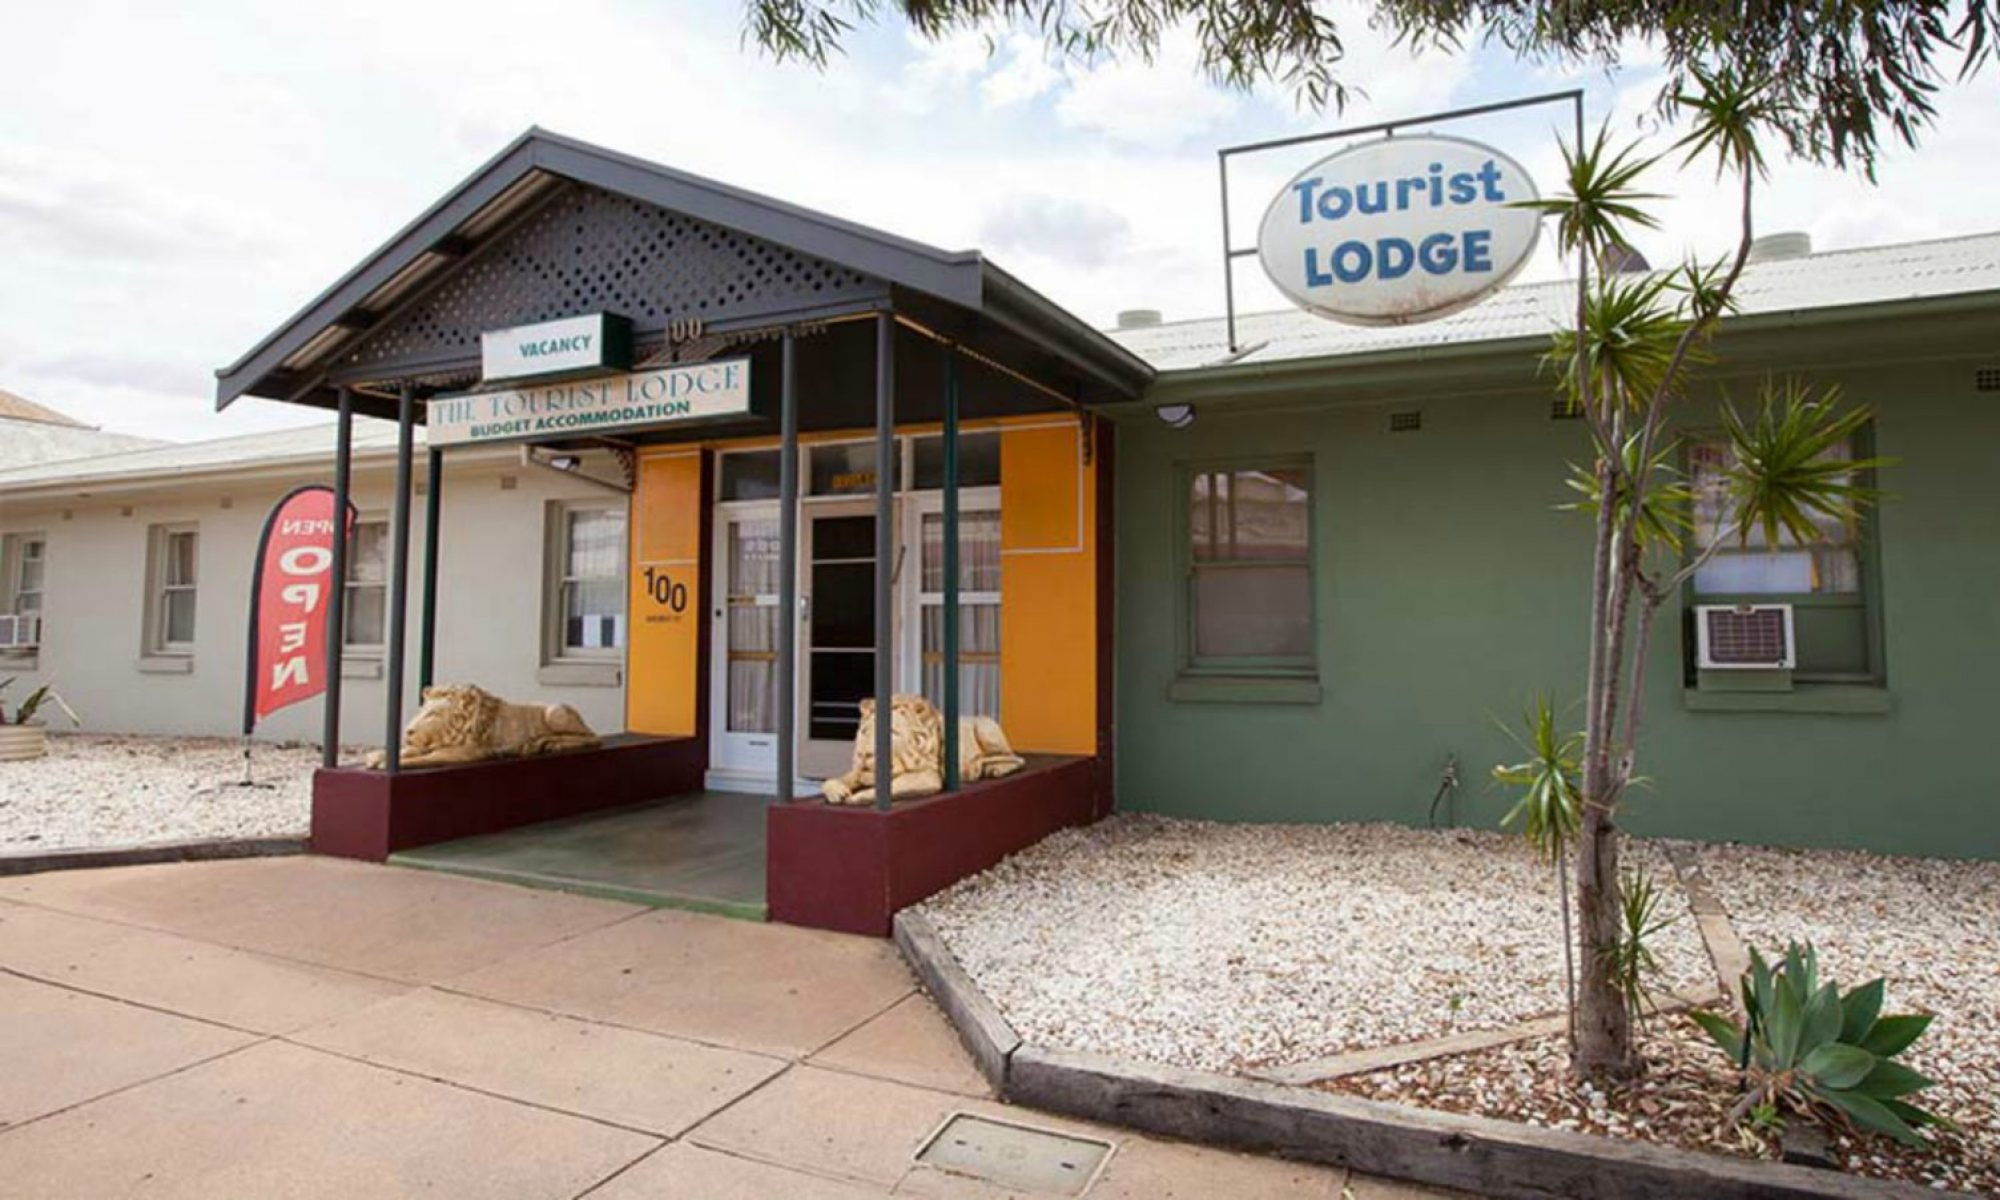 The Tourist Lodge